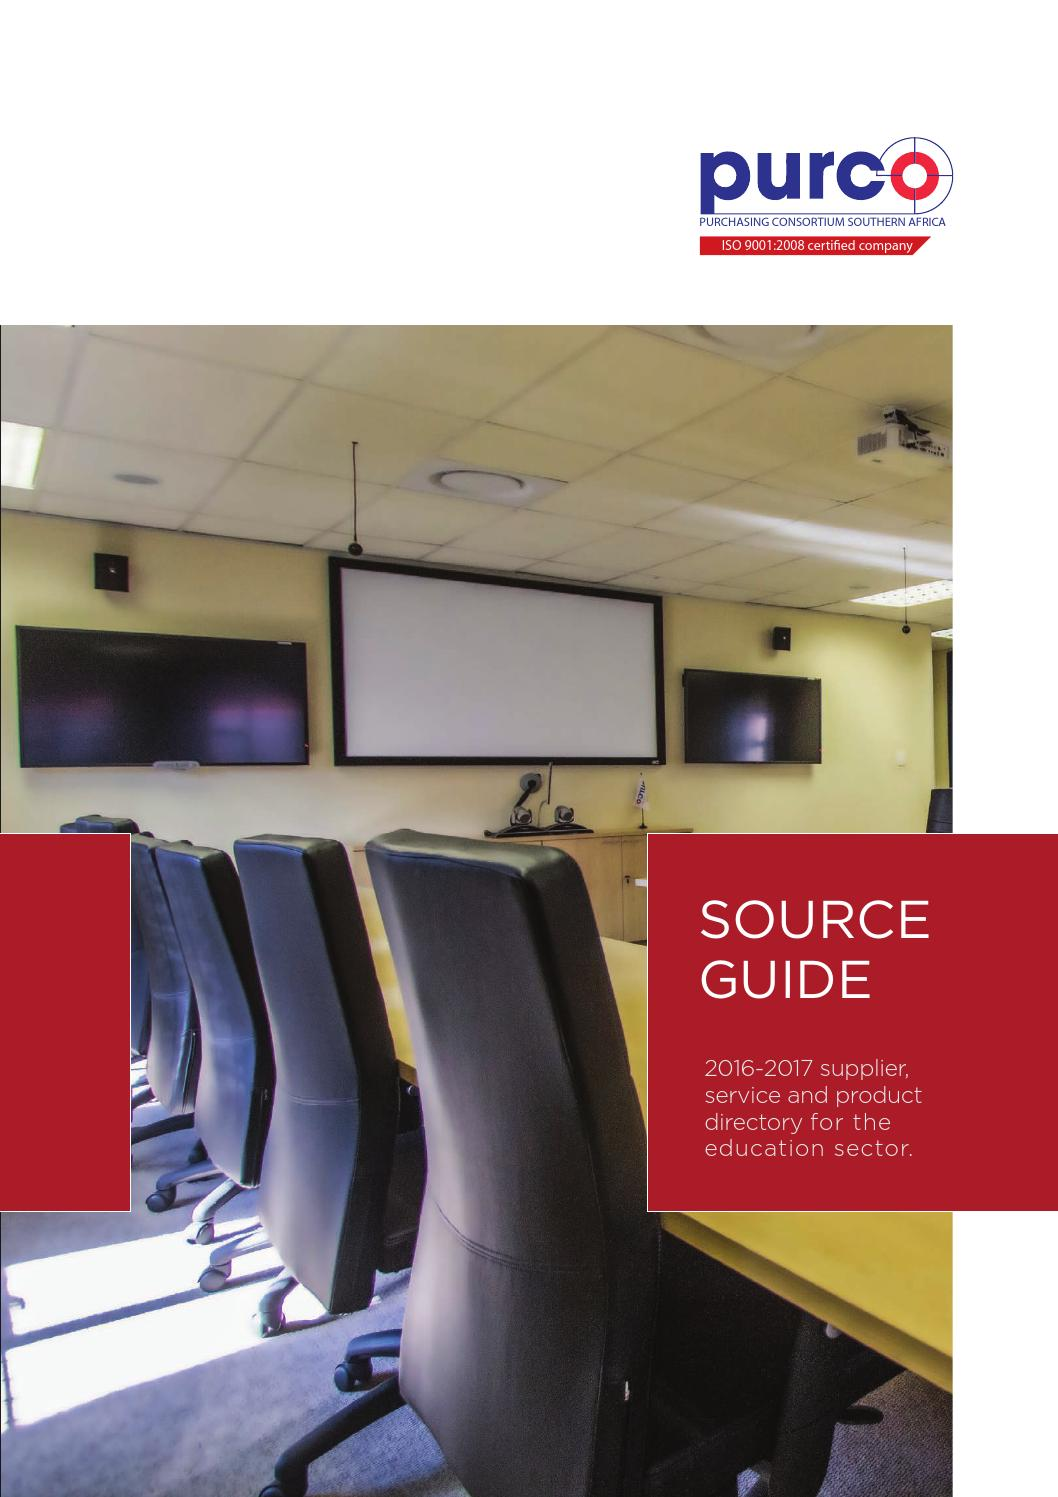 PURCO SA Source Guide 2016 By Davy Ivins